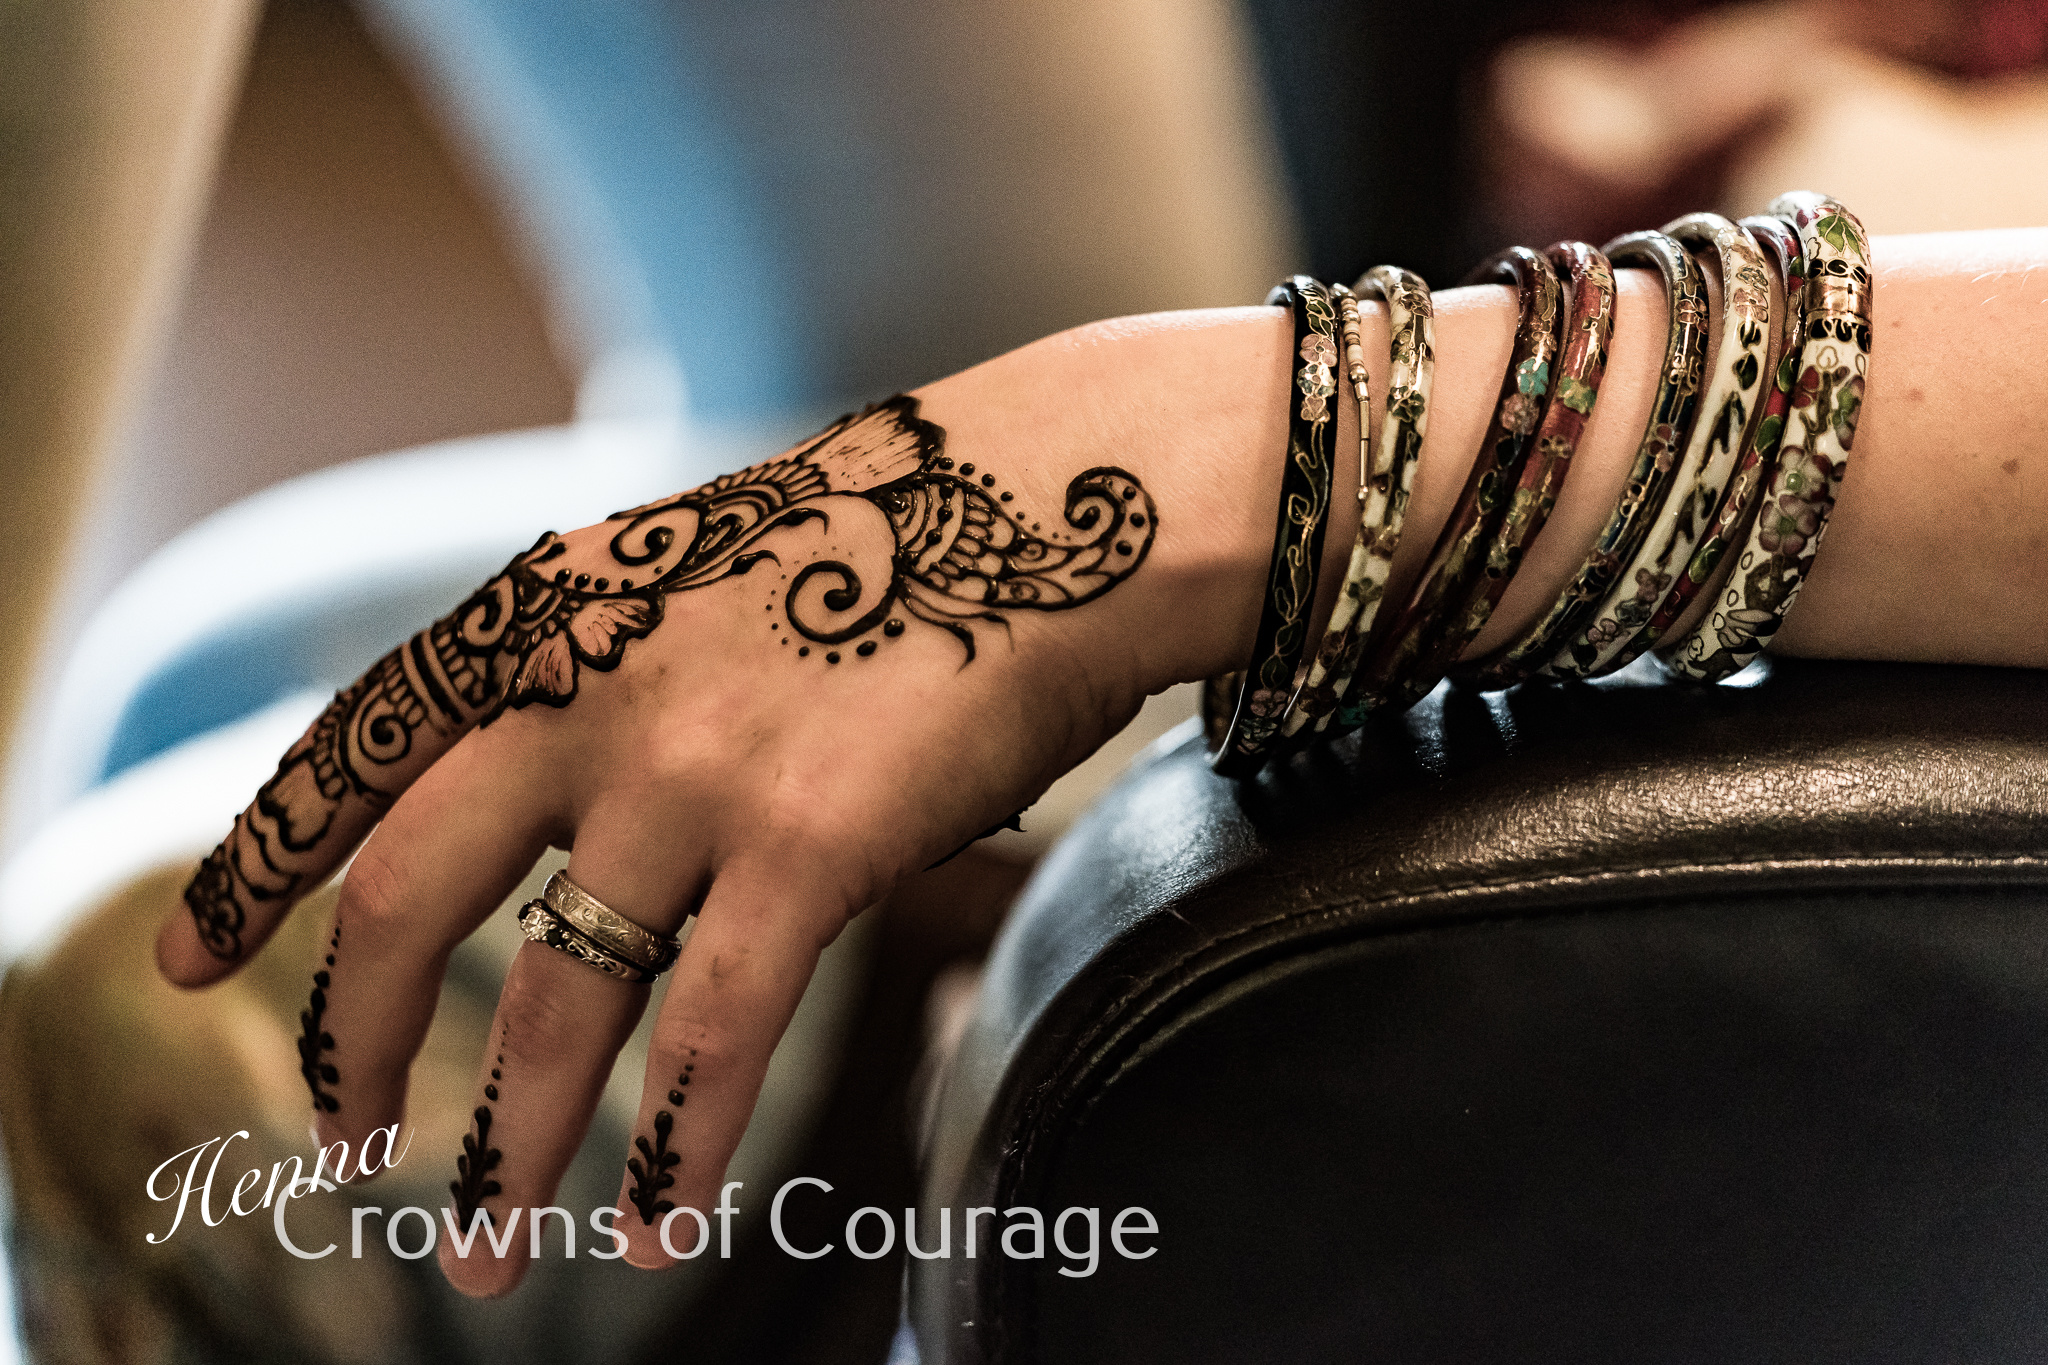 Angelique Slater - Henna Crowns of Courage